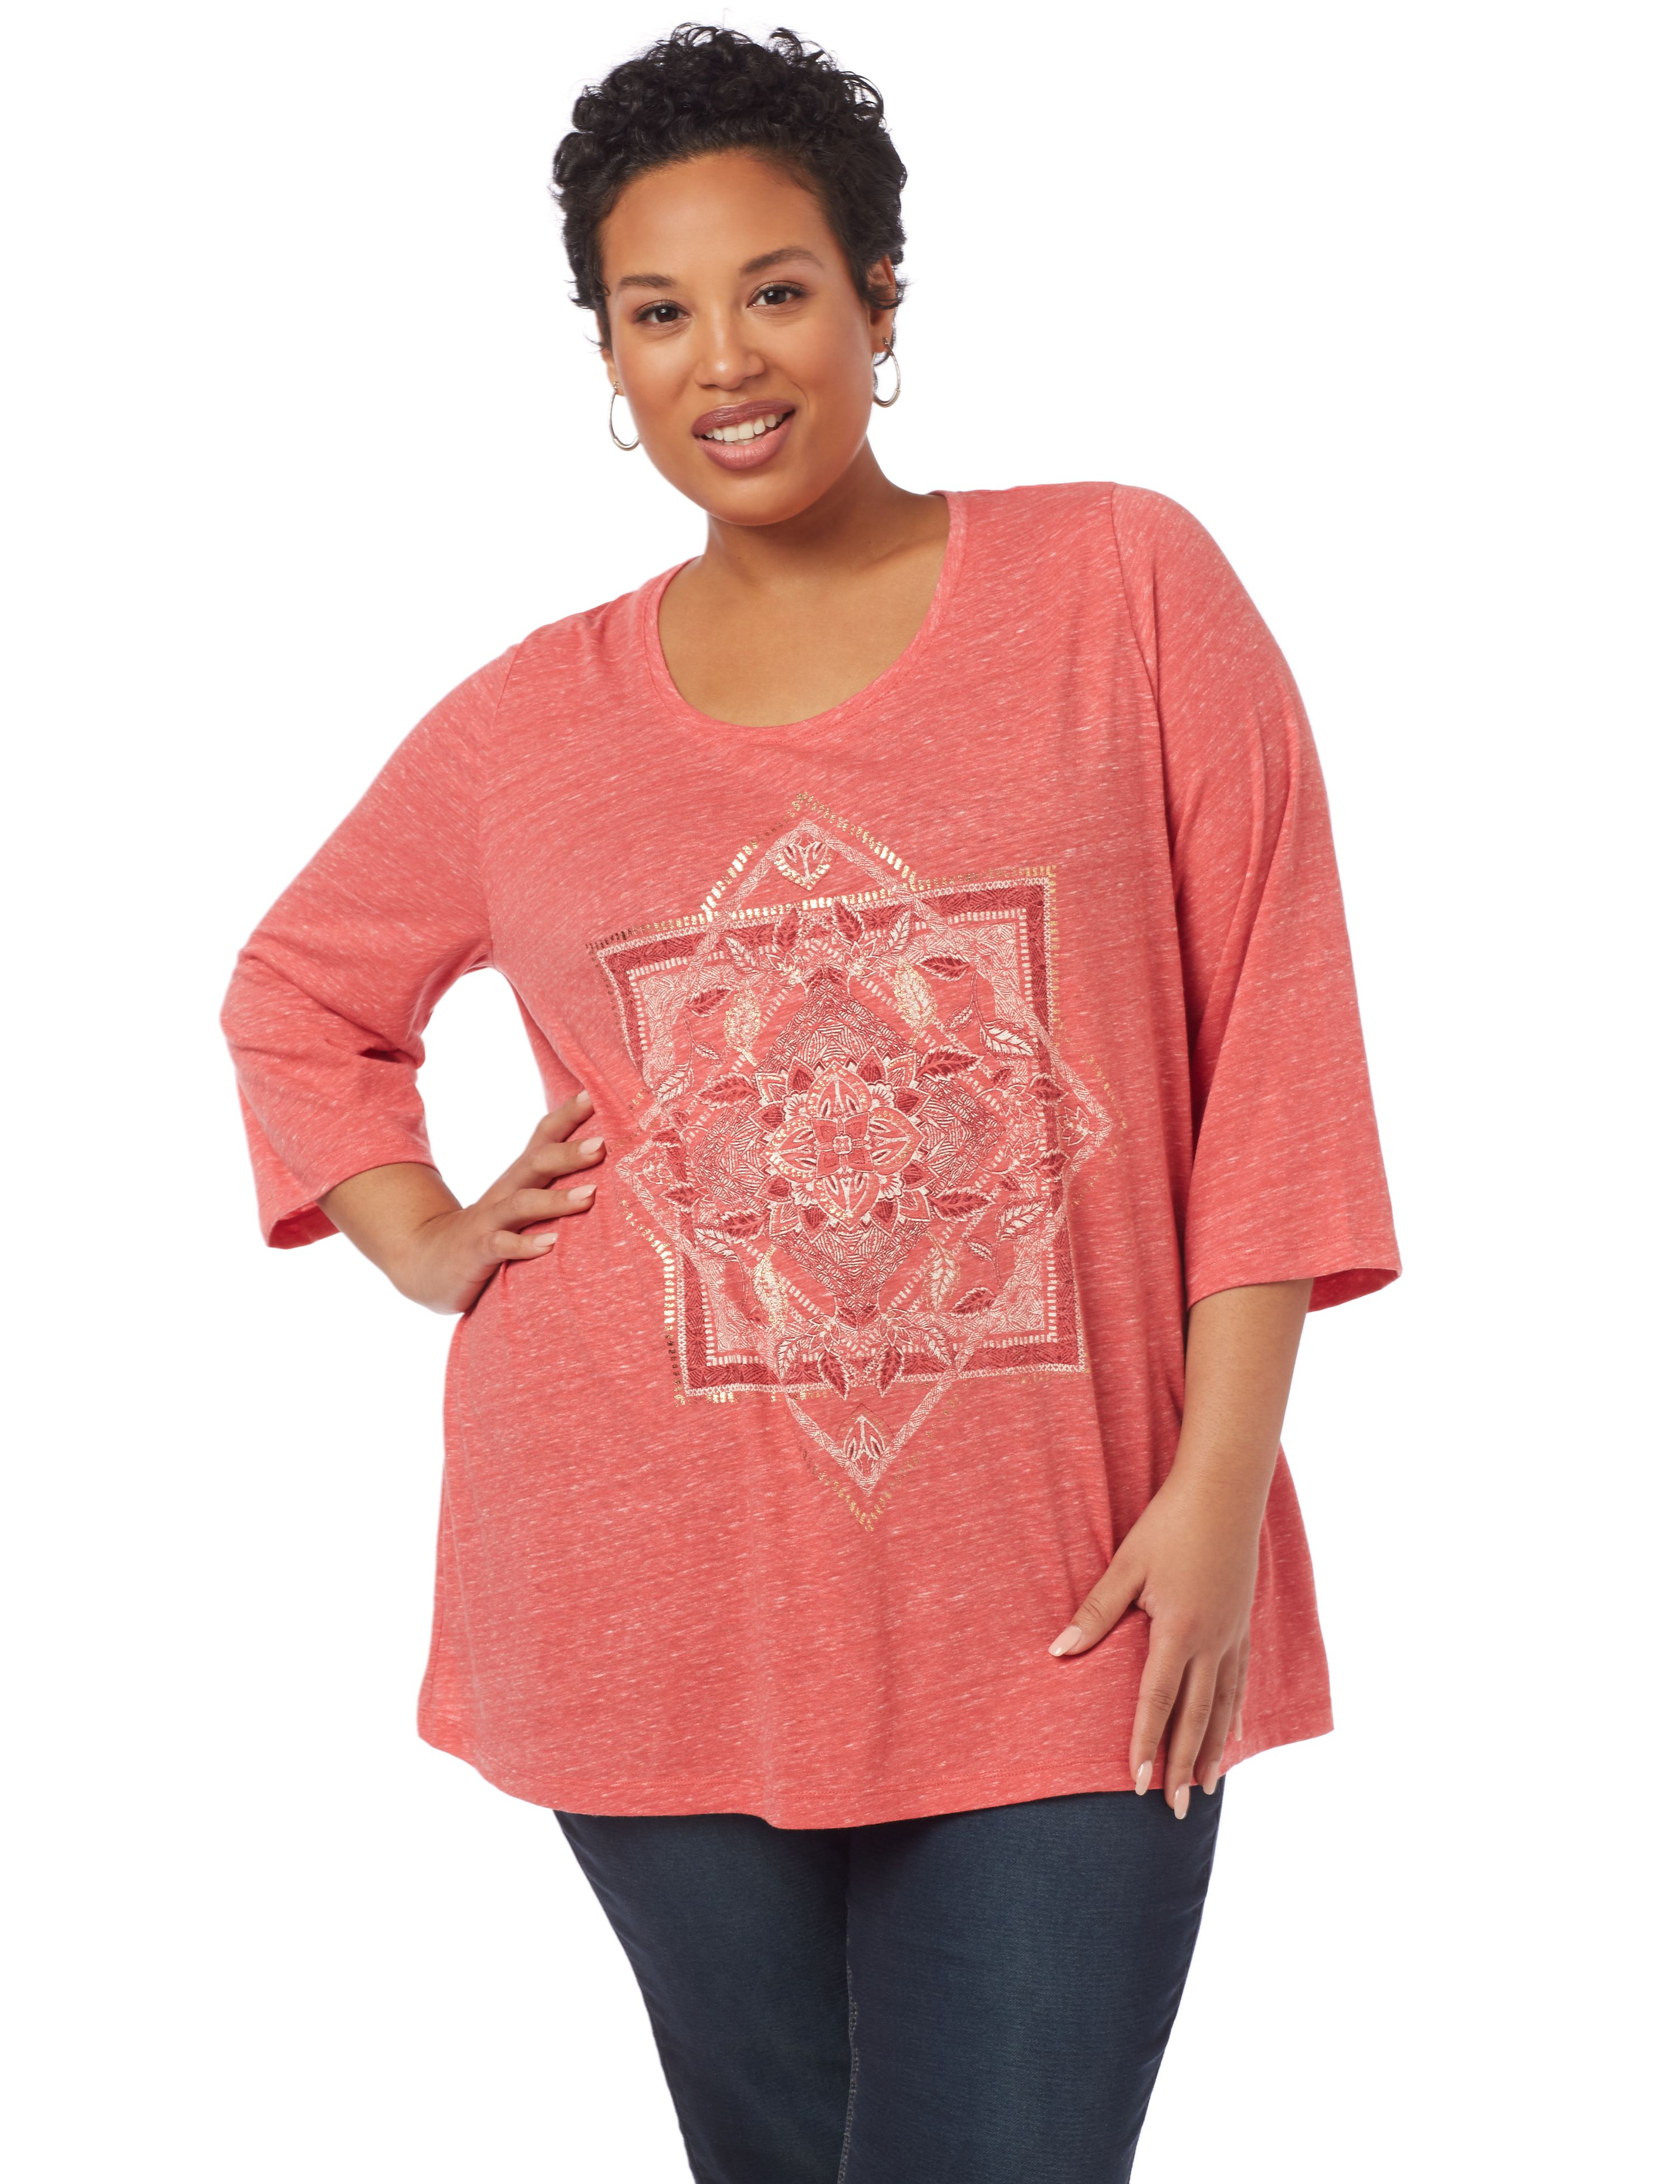 Stay Centered 3/4-Sleeve Top 1091104 SQUARE/TRIANGLE SCREEN MP-300094748